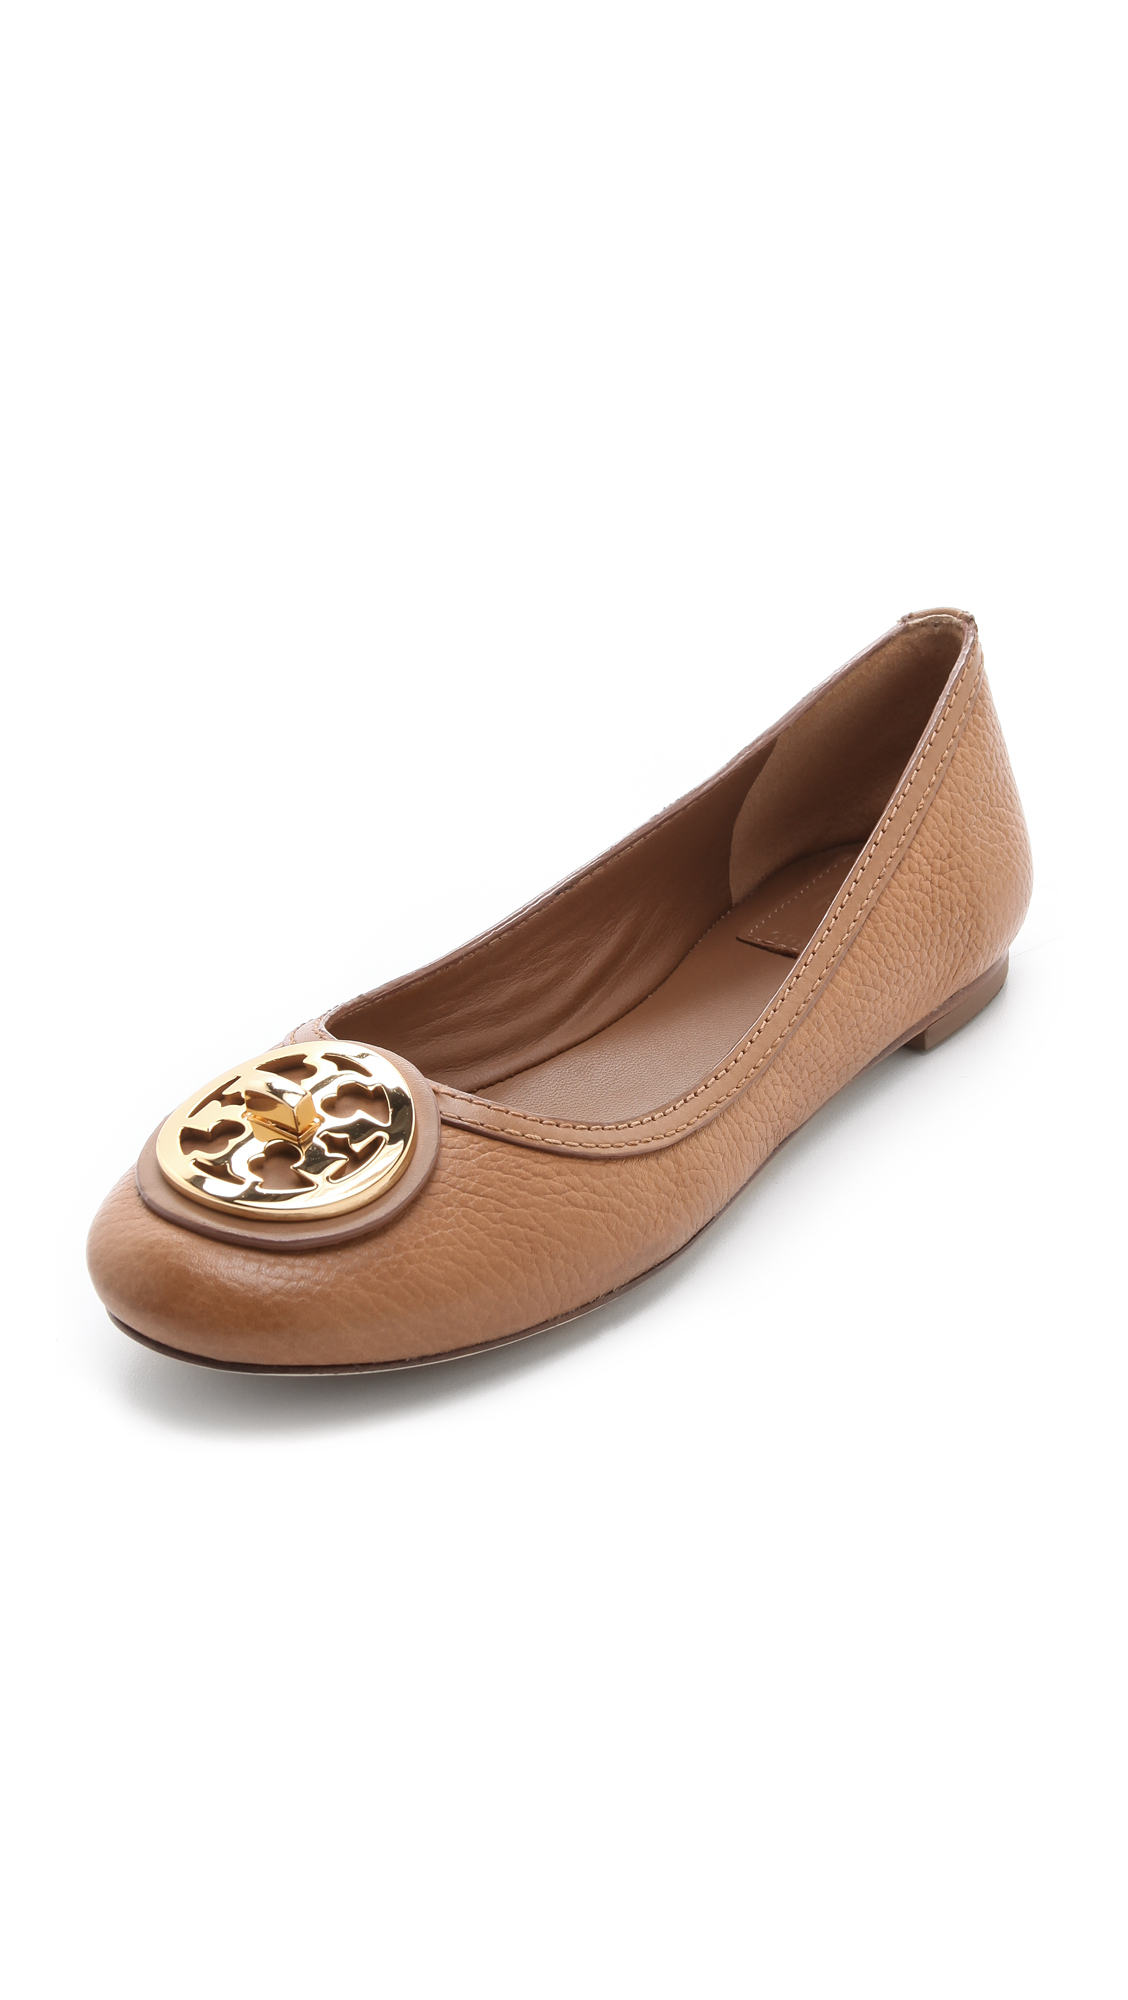 Tory Burch Today's Deals